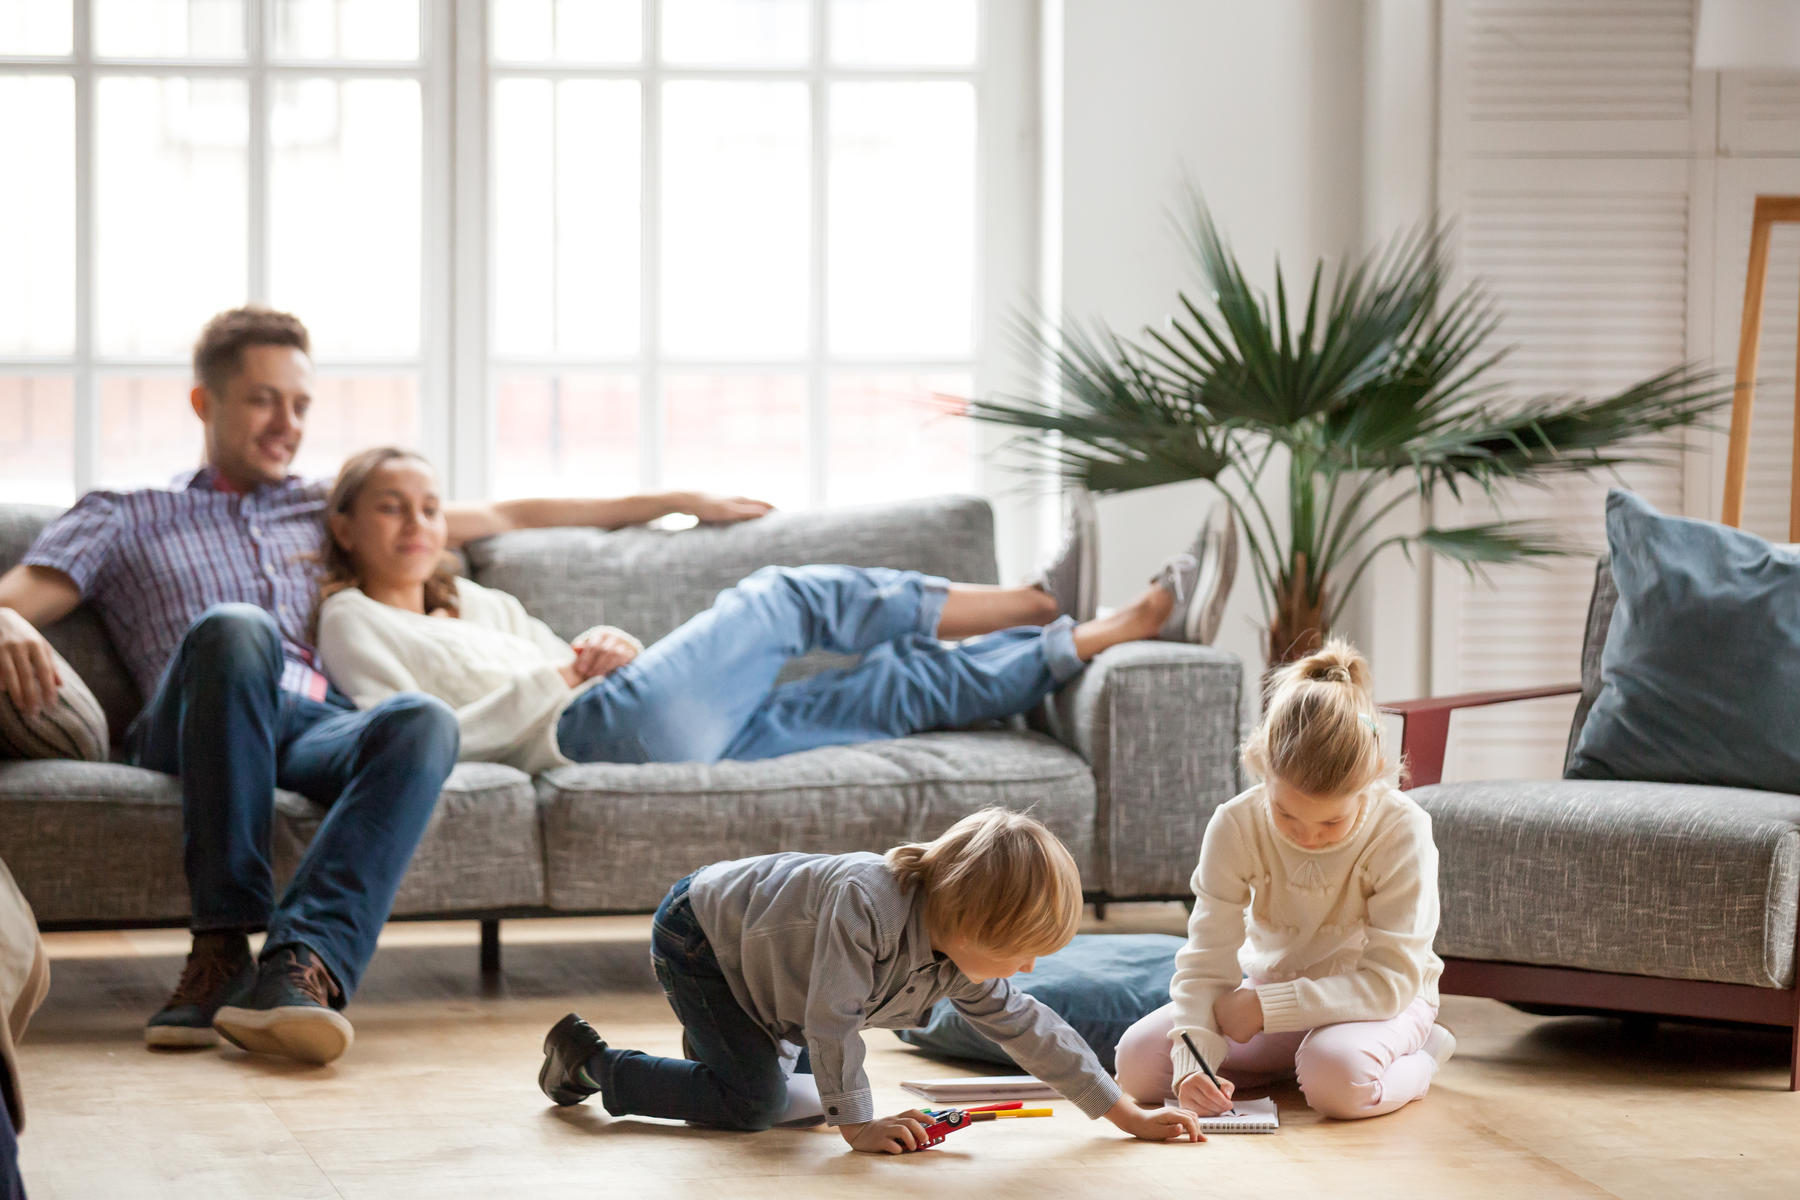 Family Relaxing in Living Room